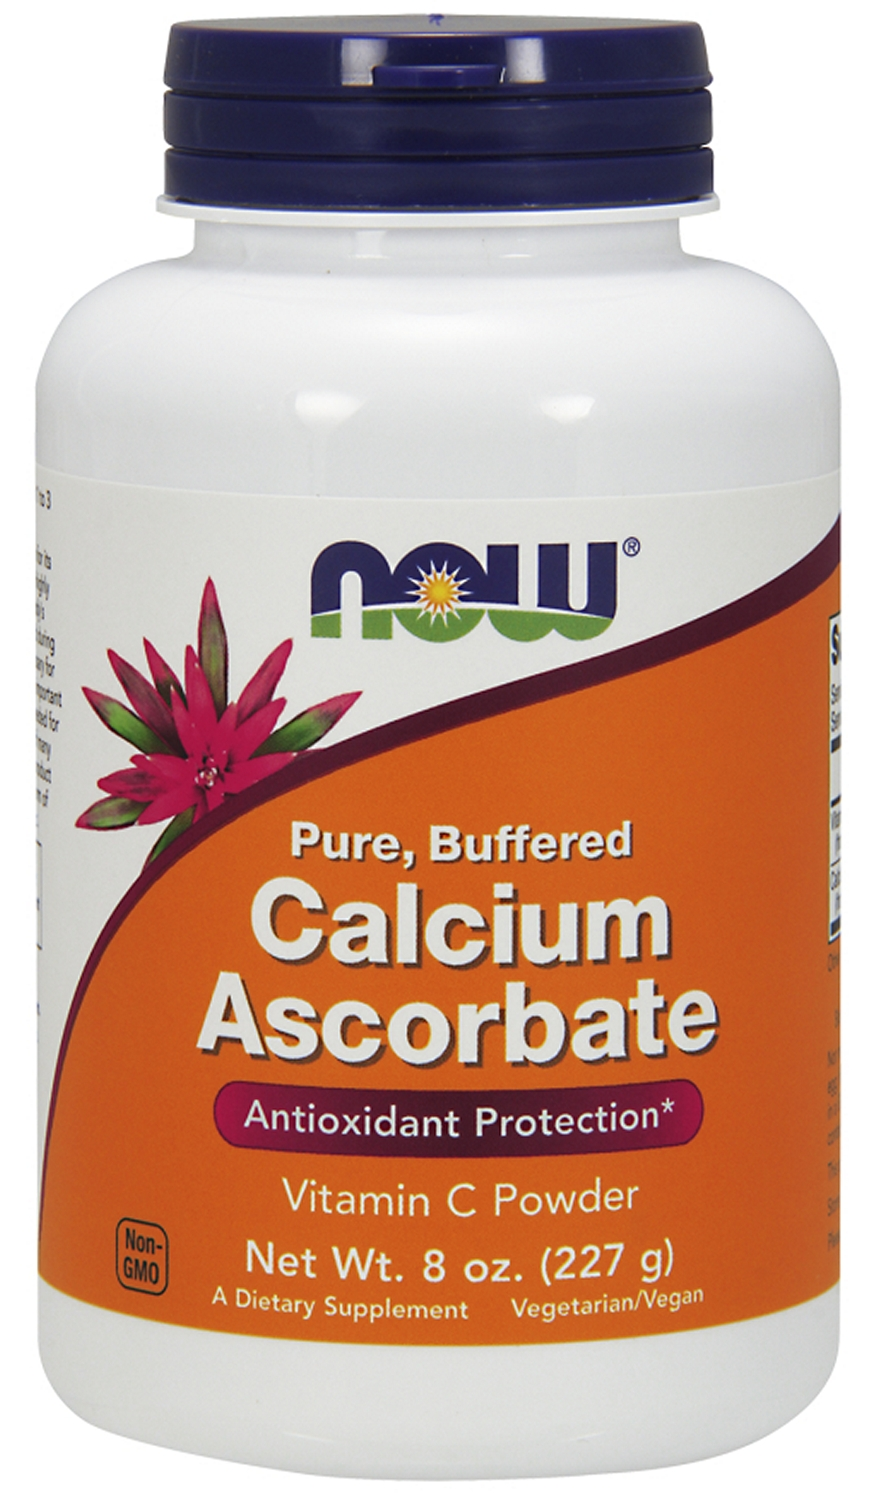 Calcium Ascorbate 8 oz (227 g) by NOW